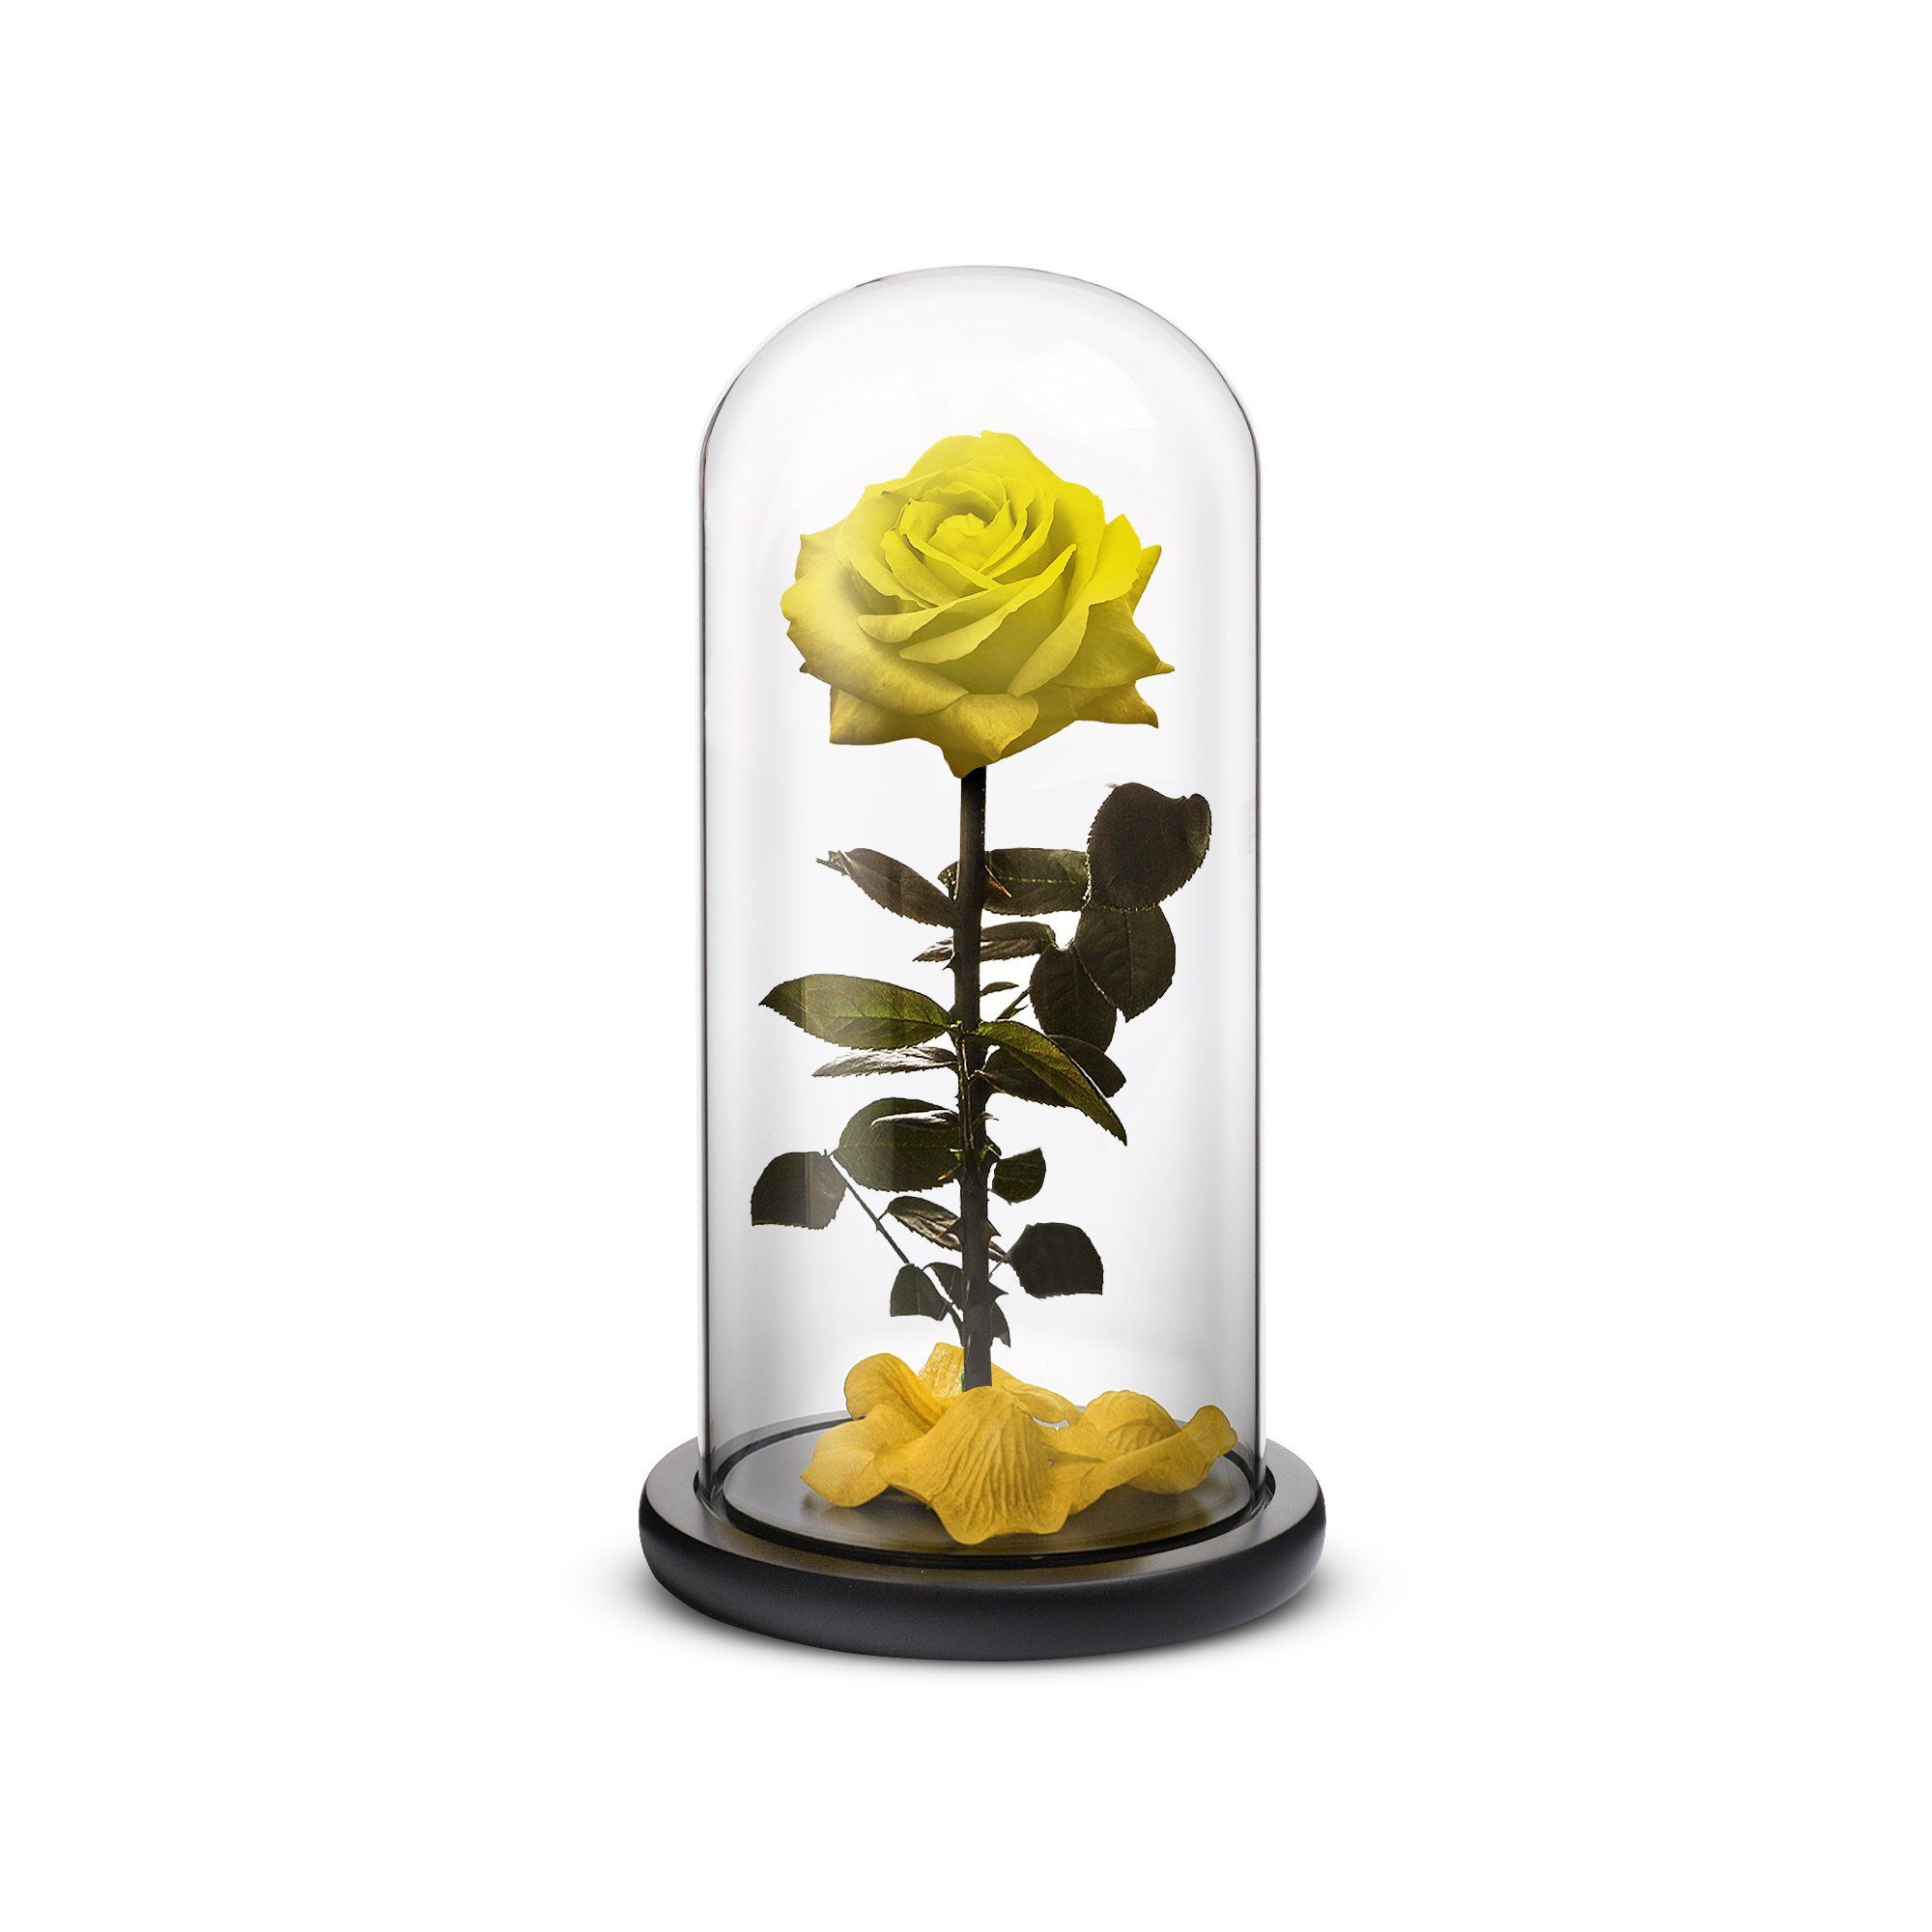 Everlasting Rose Rose in a glass, Growing flowers